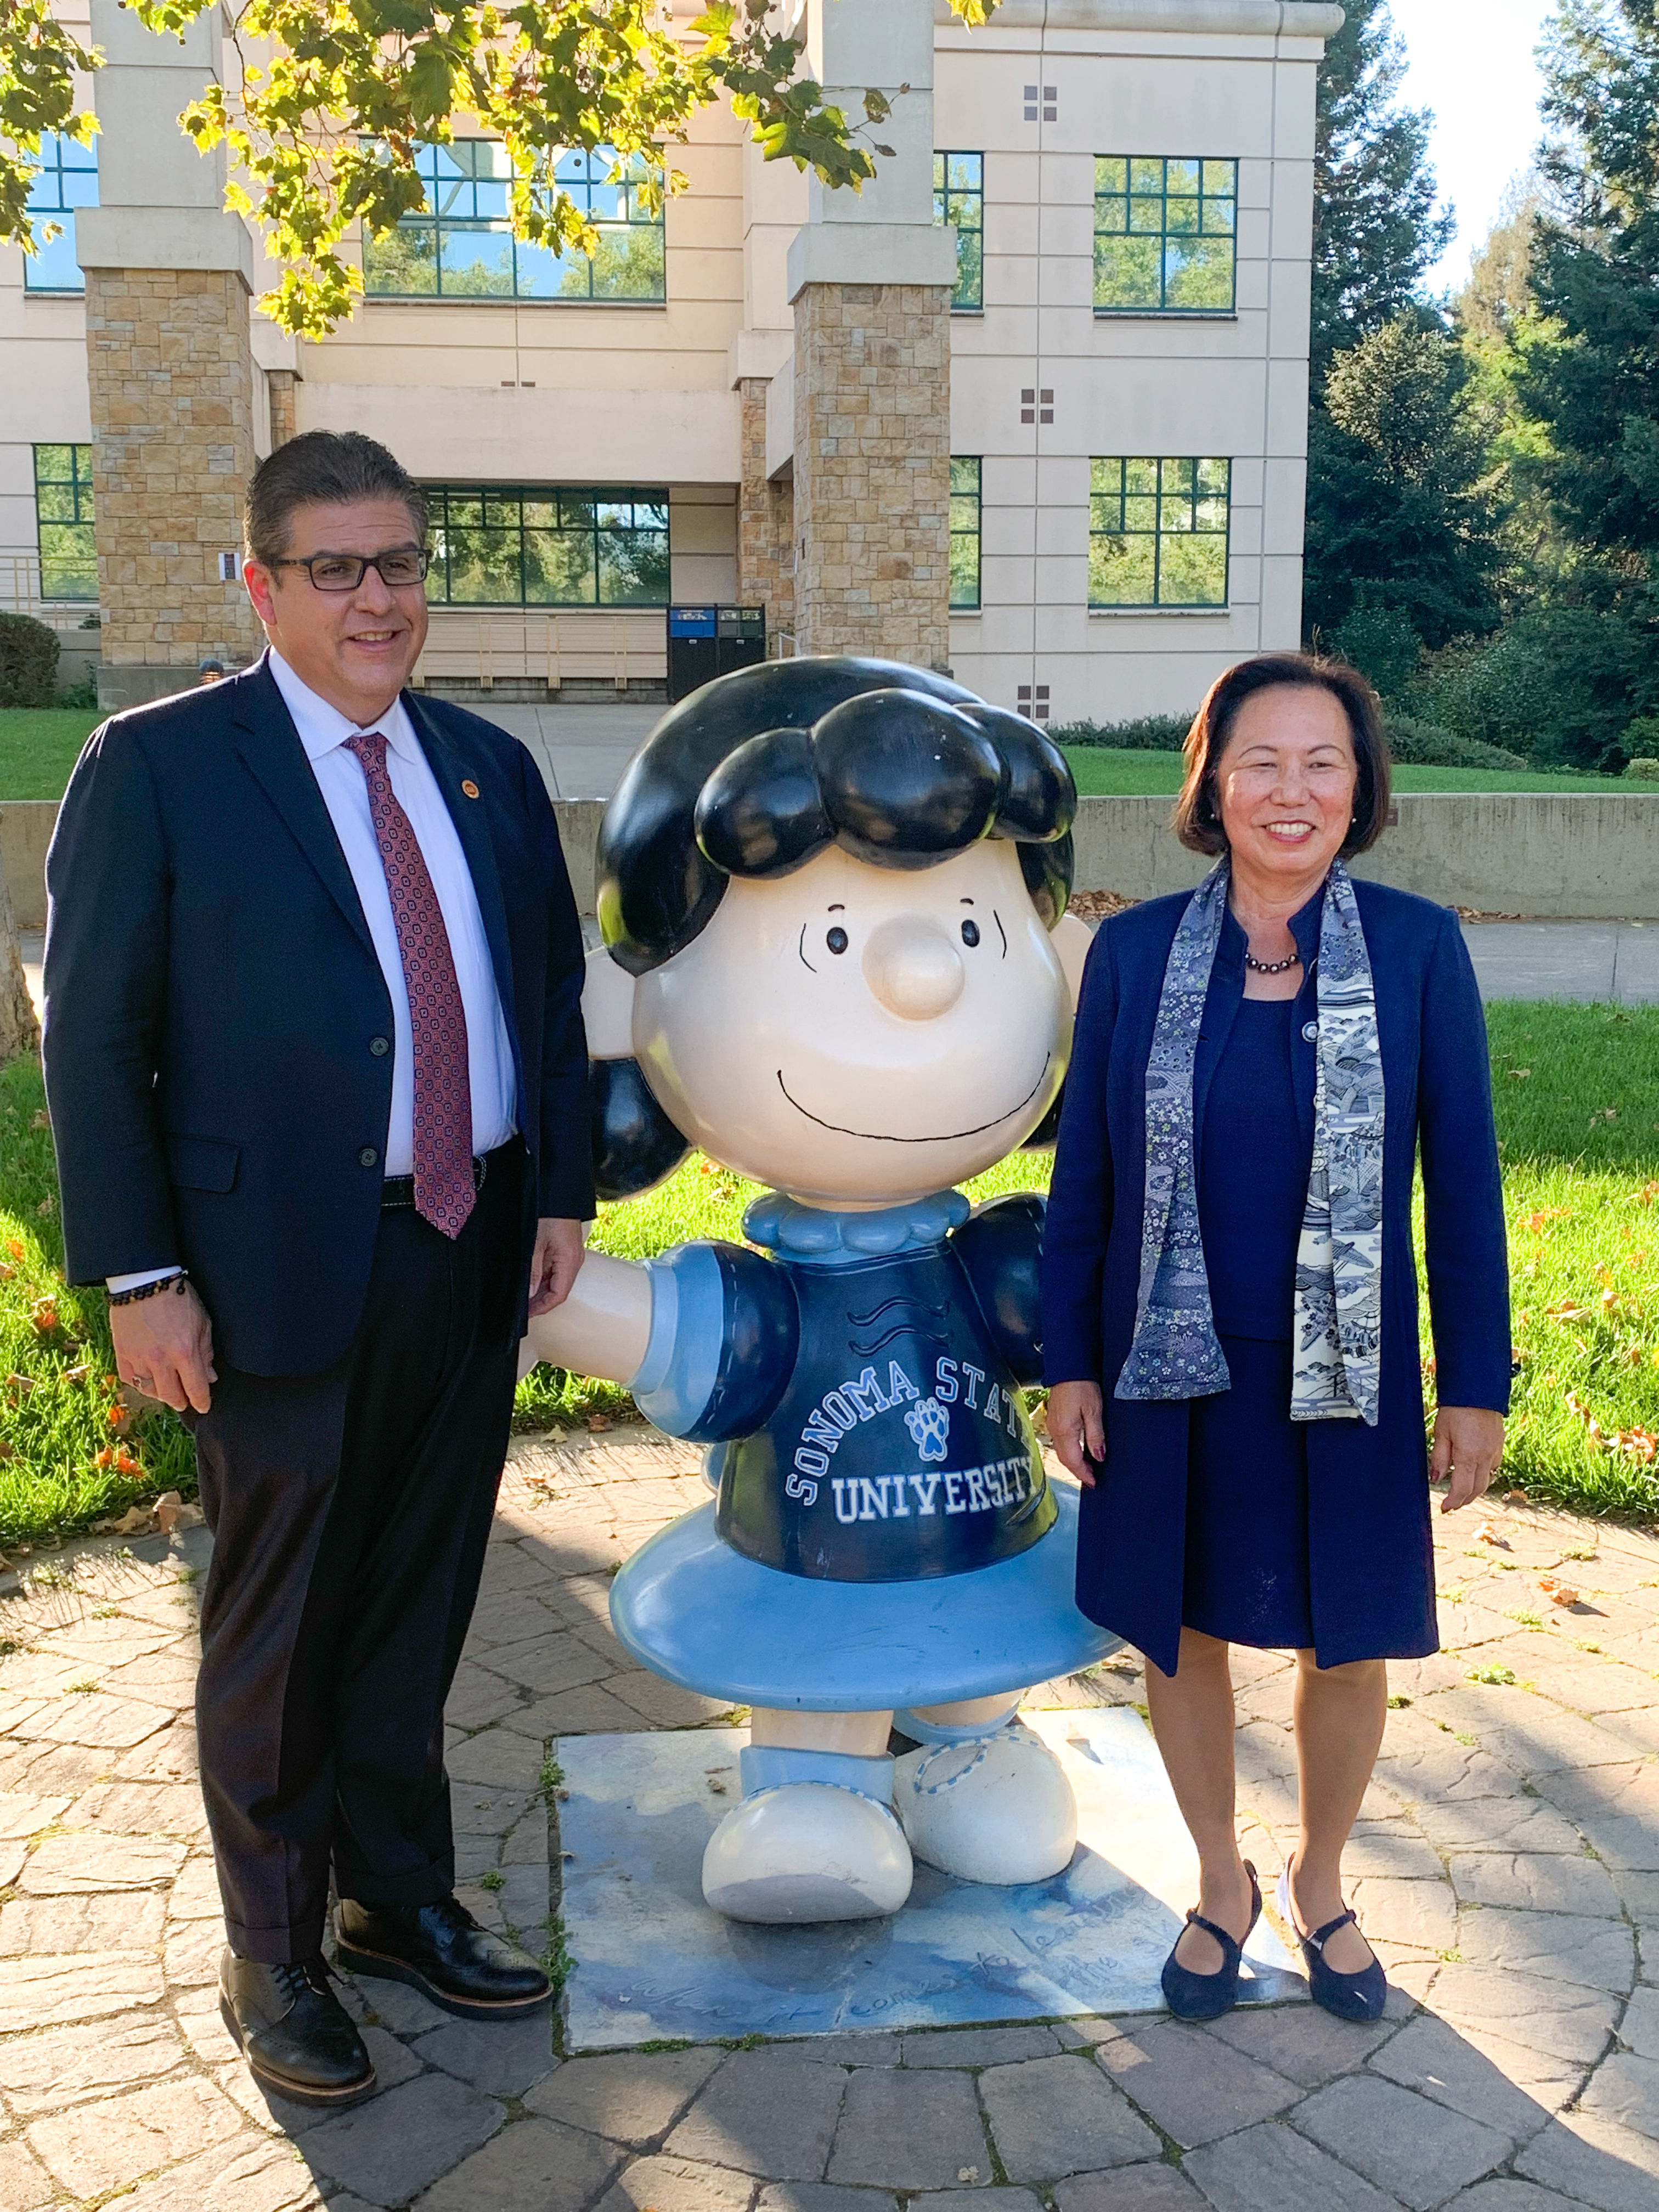 Chancellor Castro poses for photo with President Sakaki at the Lucy statue